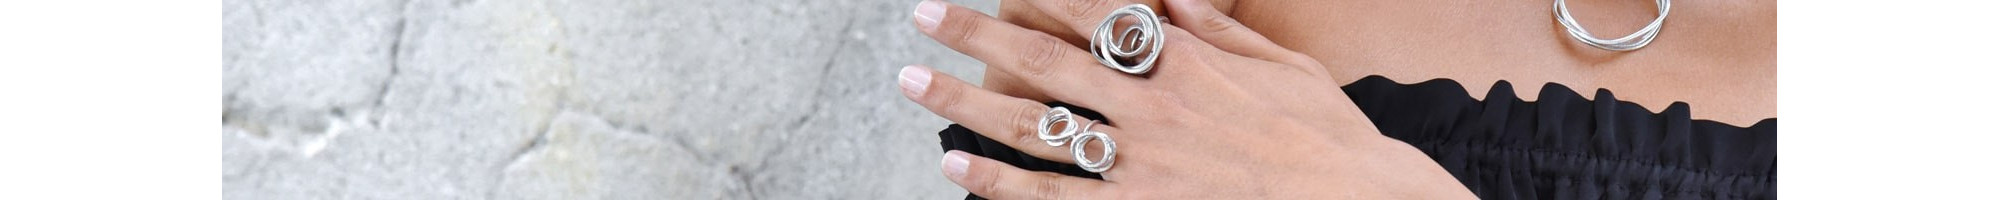 Silver colored Women's Rings | Exclusive designs online at BIJOU BOX